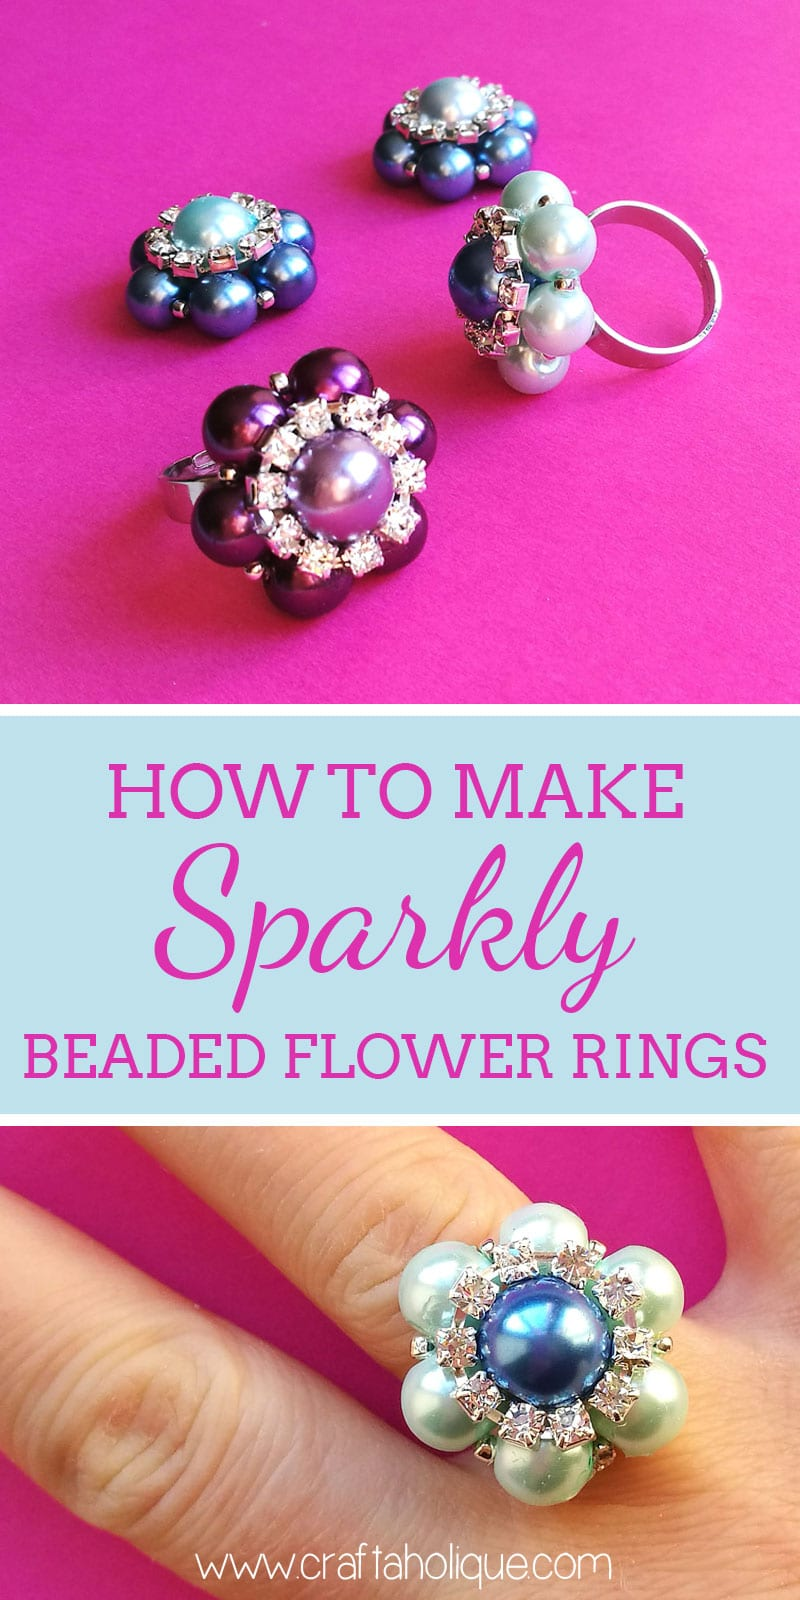 Beaded flower ring tutorial from Craftaholique